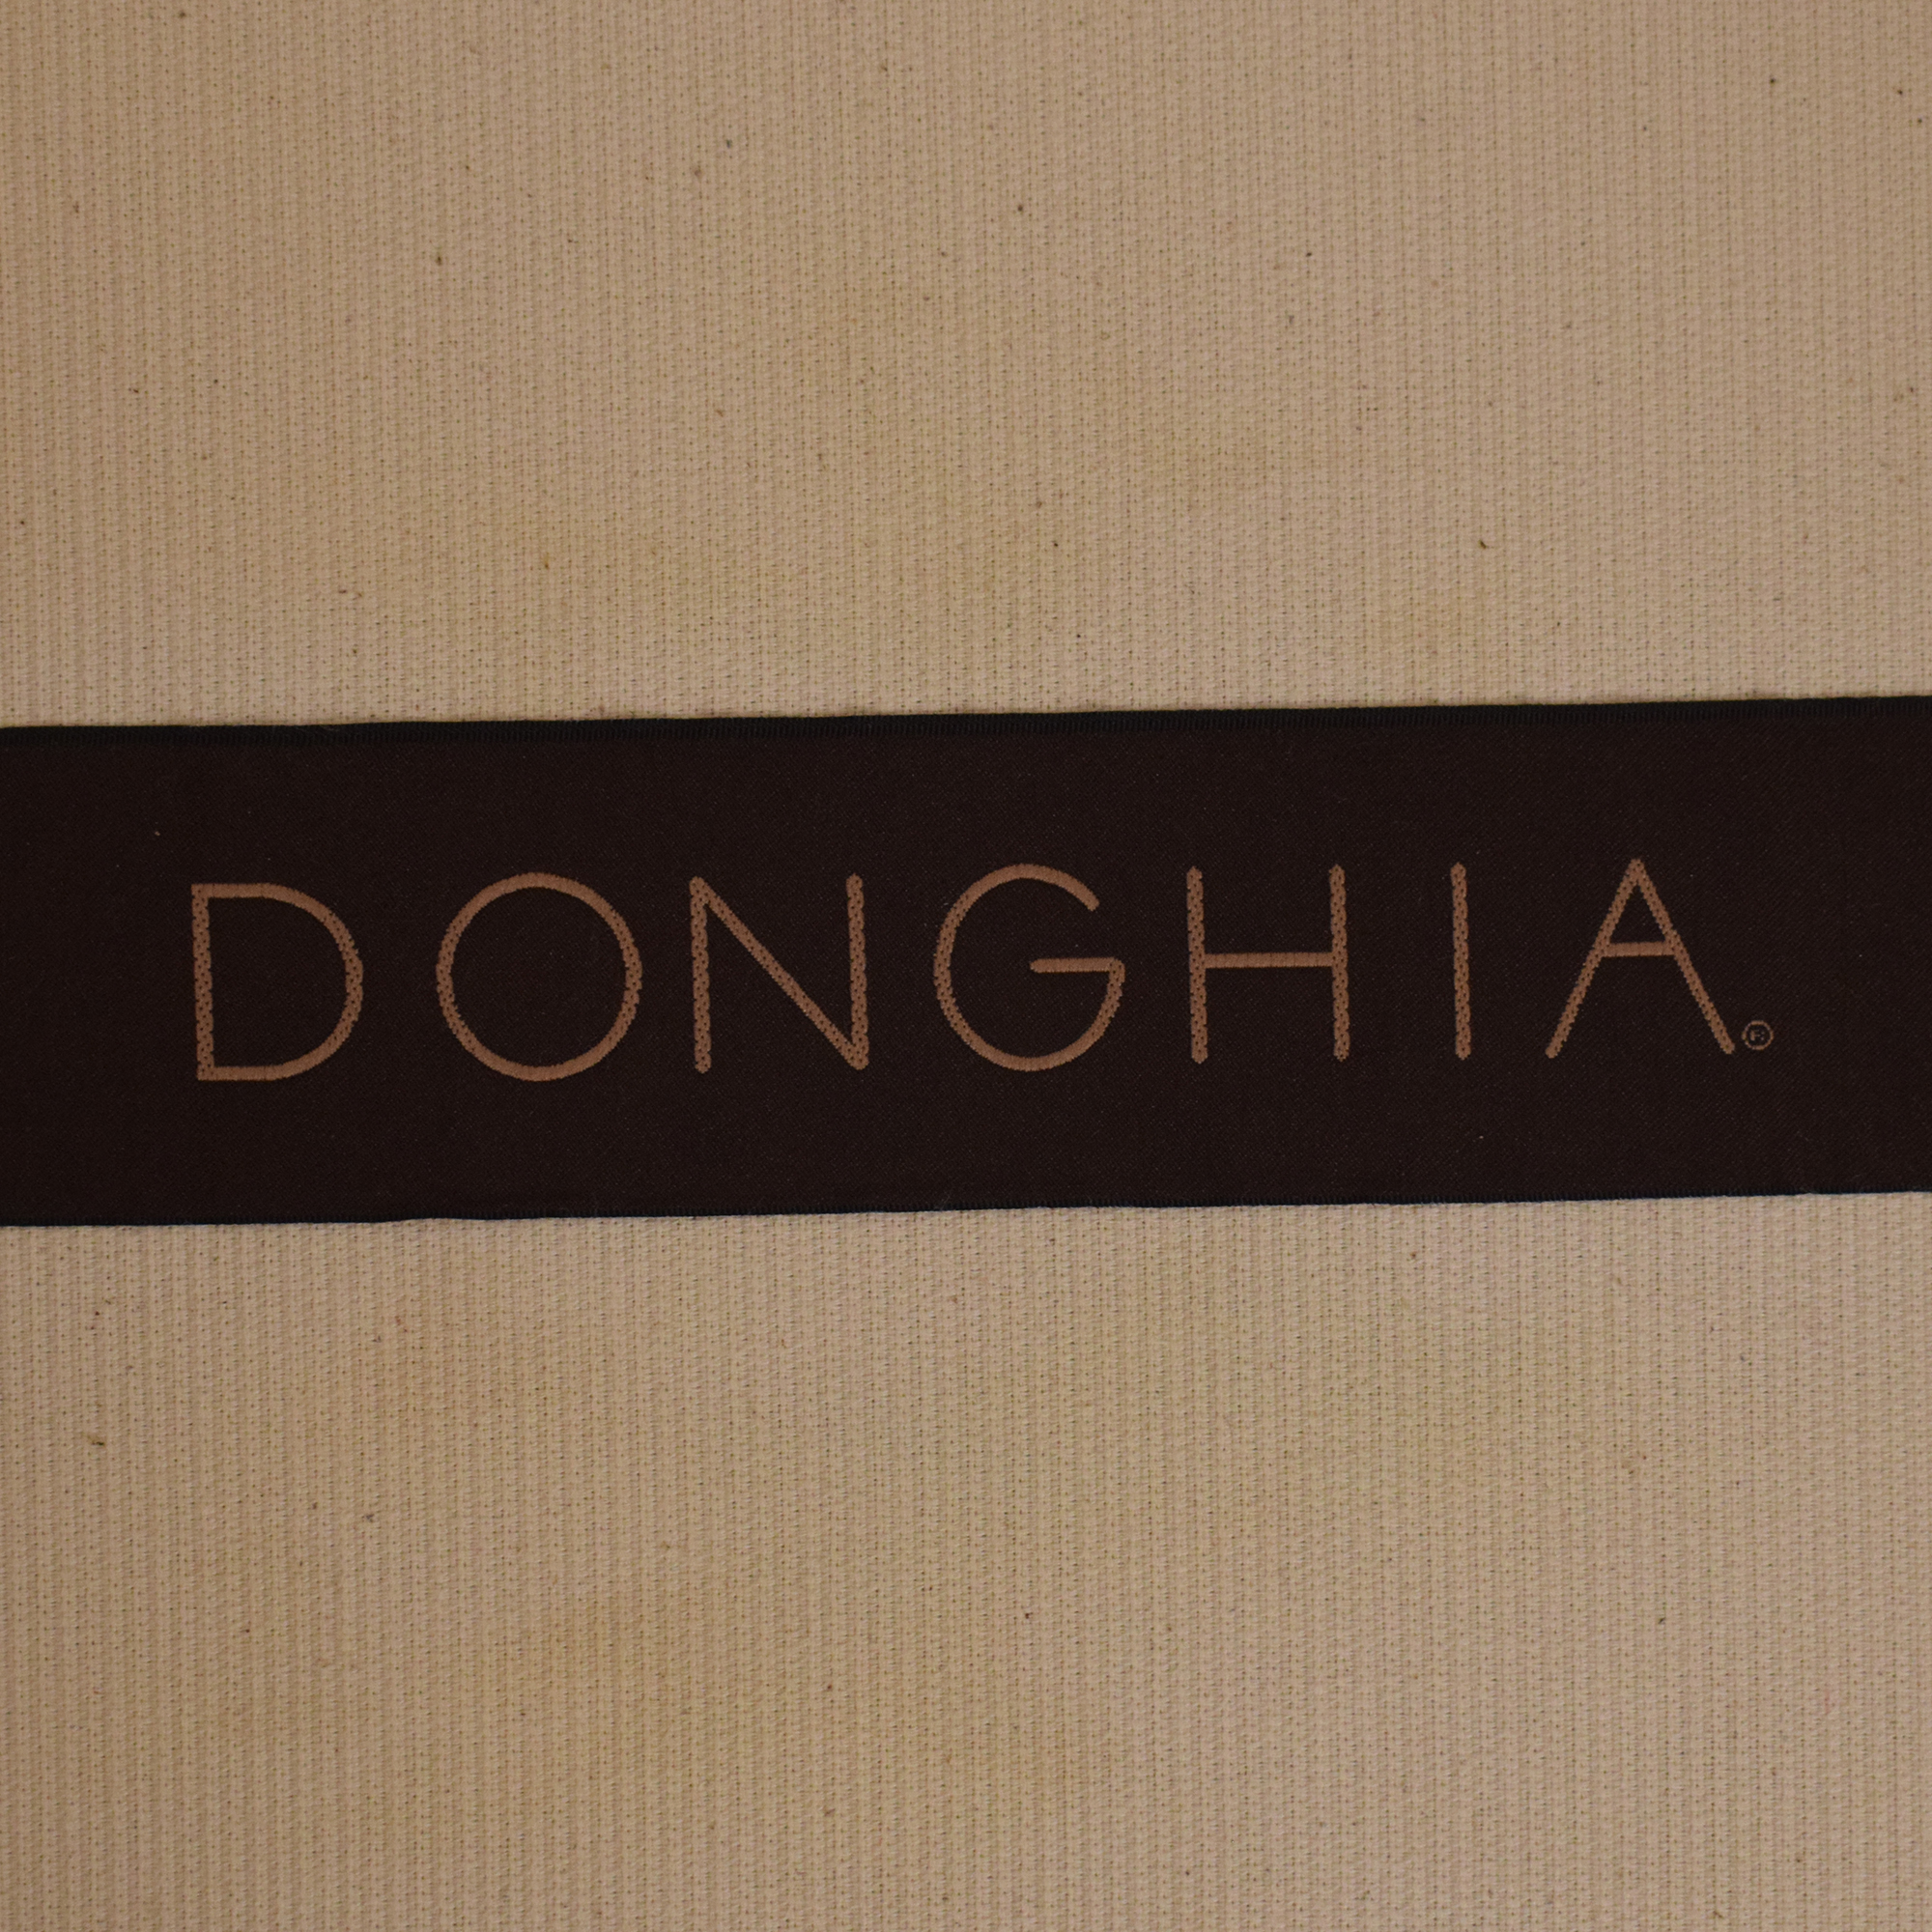 Donghia Donghia by John Hutton Mahogany and Wicker Lounger on sale